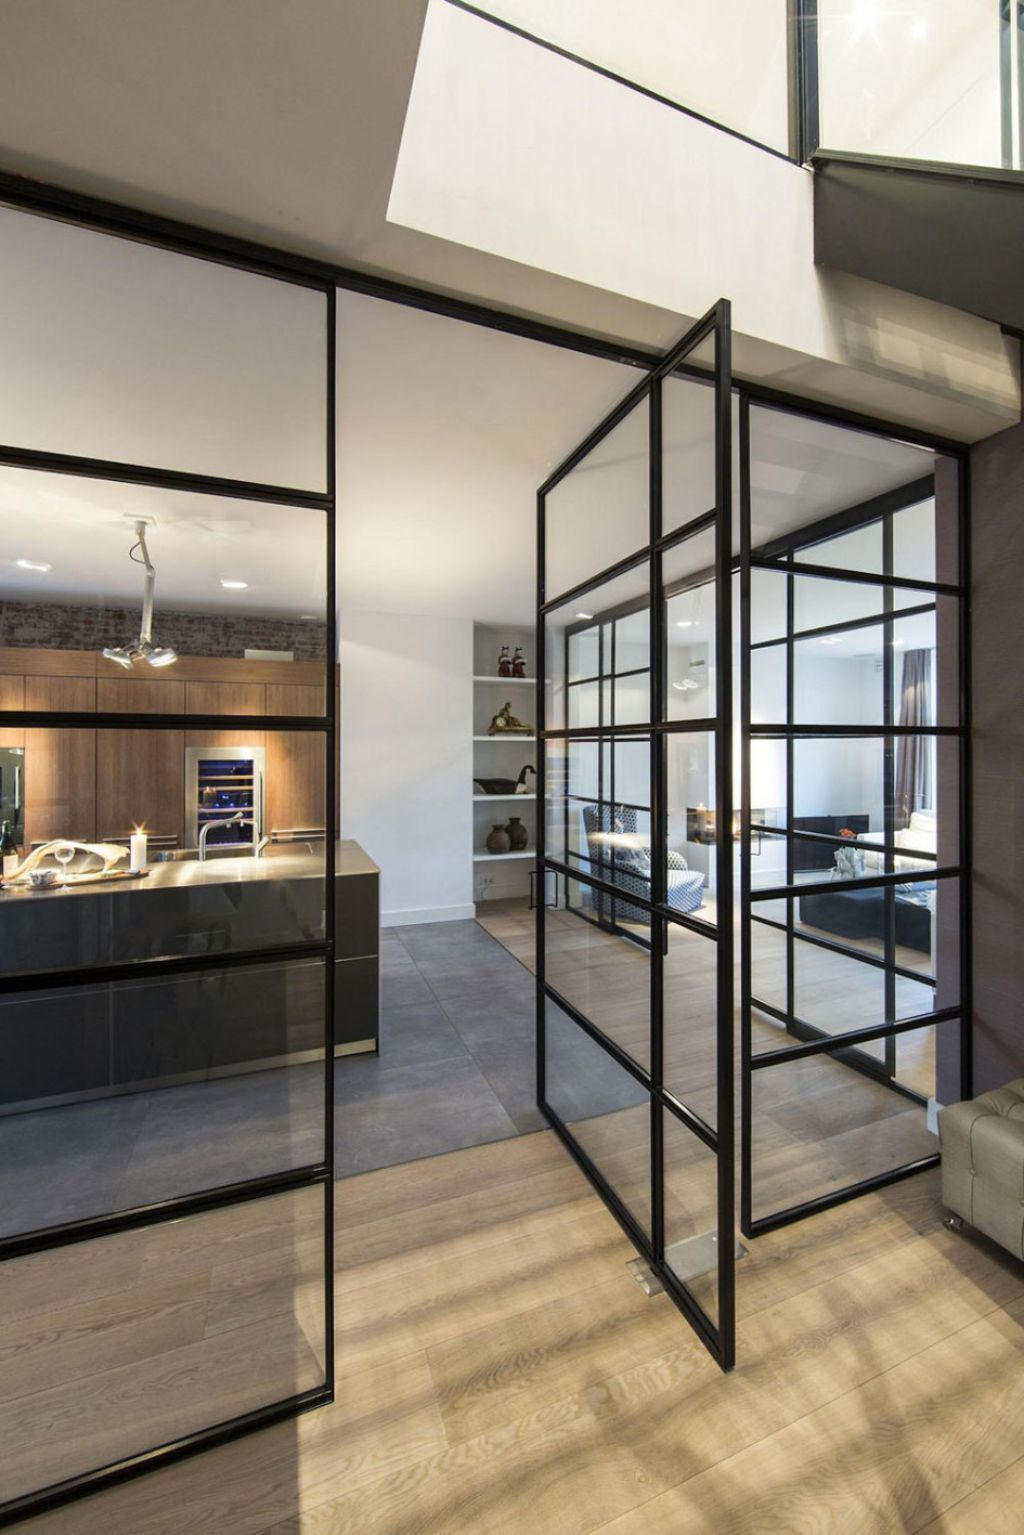 Glastür Metallrahmen Apartment With Glass Railings In Dark Steel Frame Door With Clear